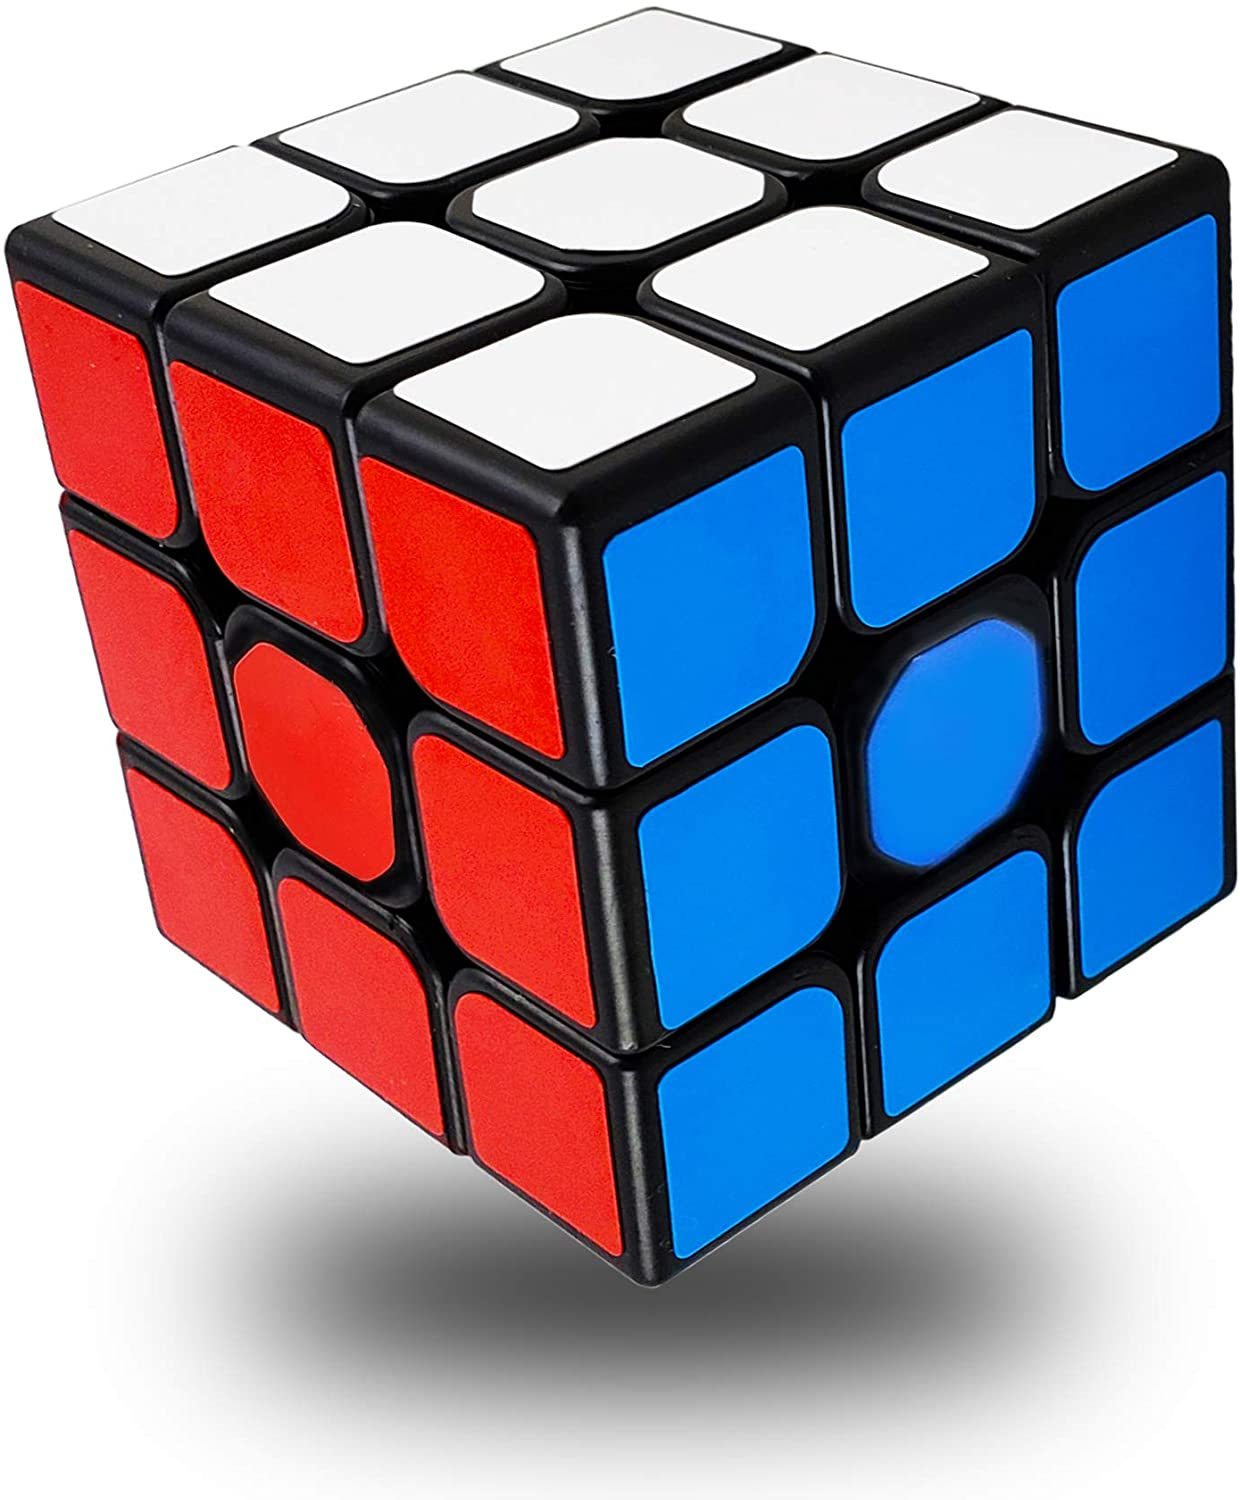 You are currently viewing I wrote a Bidirectional BFS algorithm in Kotlin to solve 2×2 Rubik's Cubes